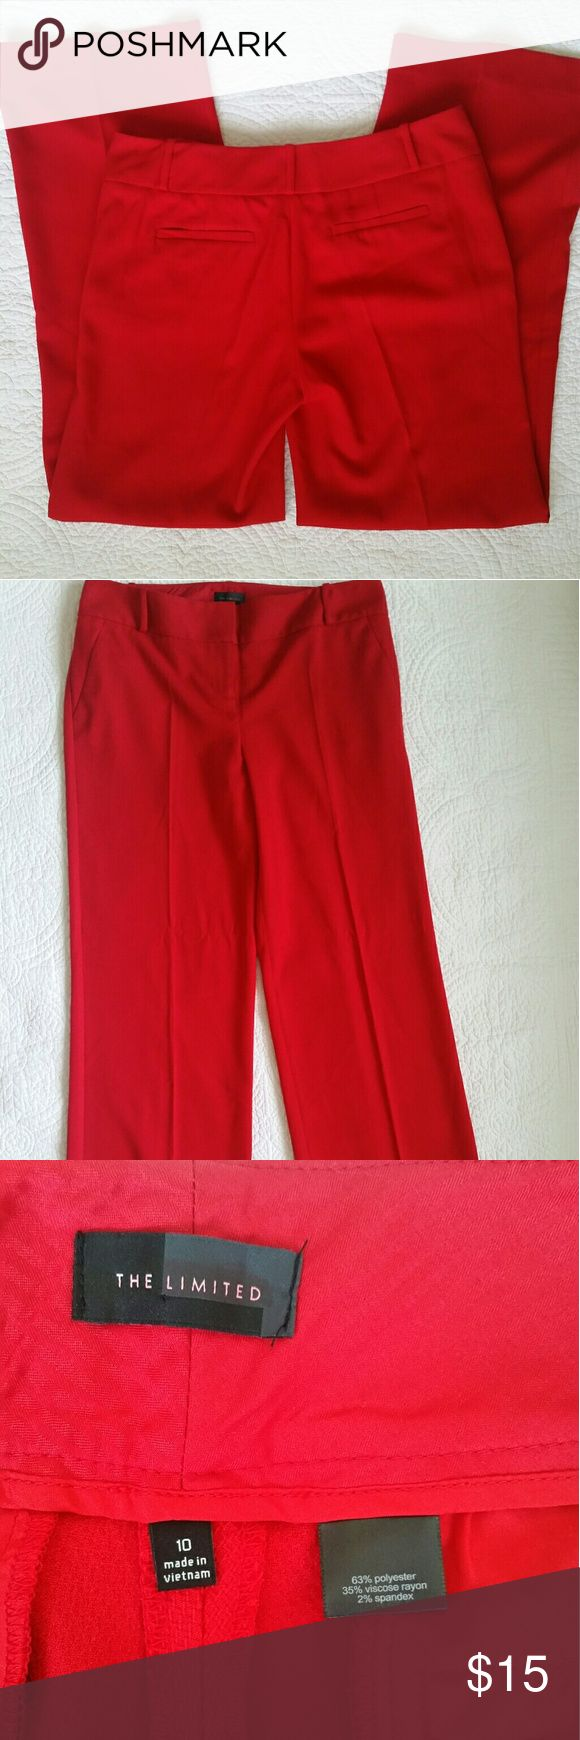 The Limited red dress pants Lady in Red! Attention! Nice soft dressy pants.  Faux pockets. Size 10 Inseam: 31 inches The Limited Pants Trousers